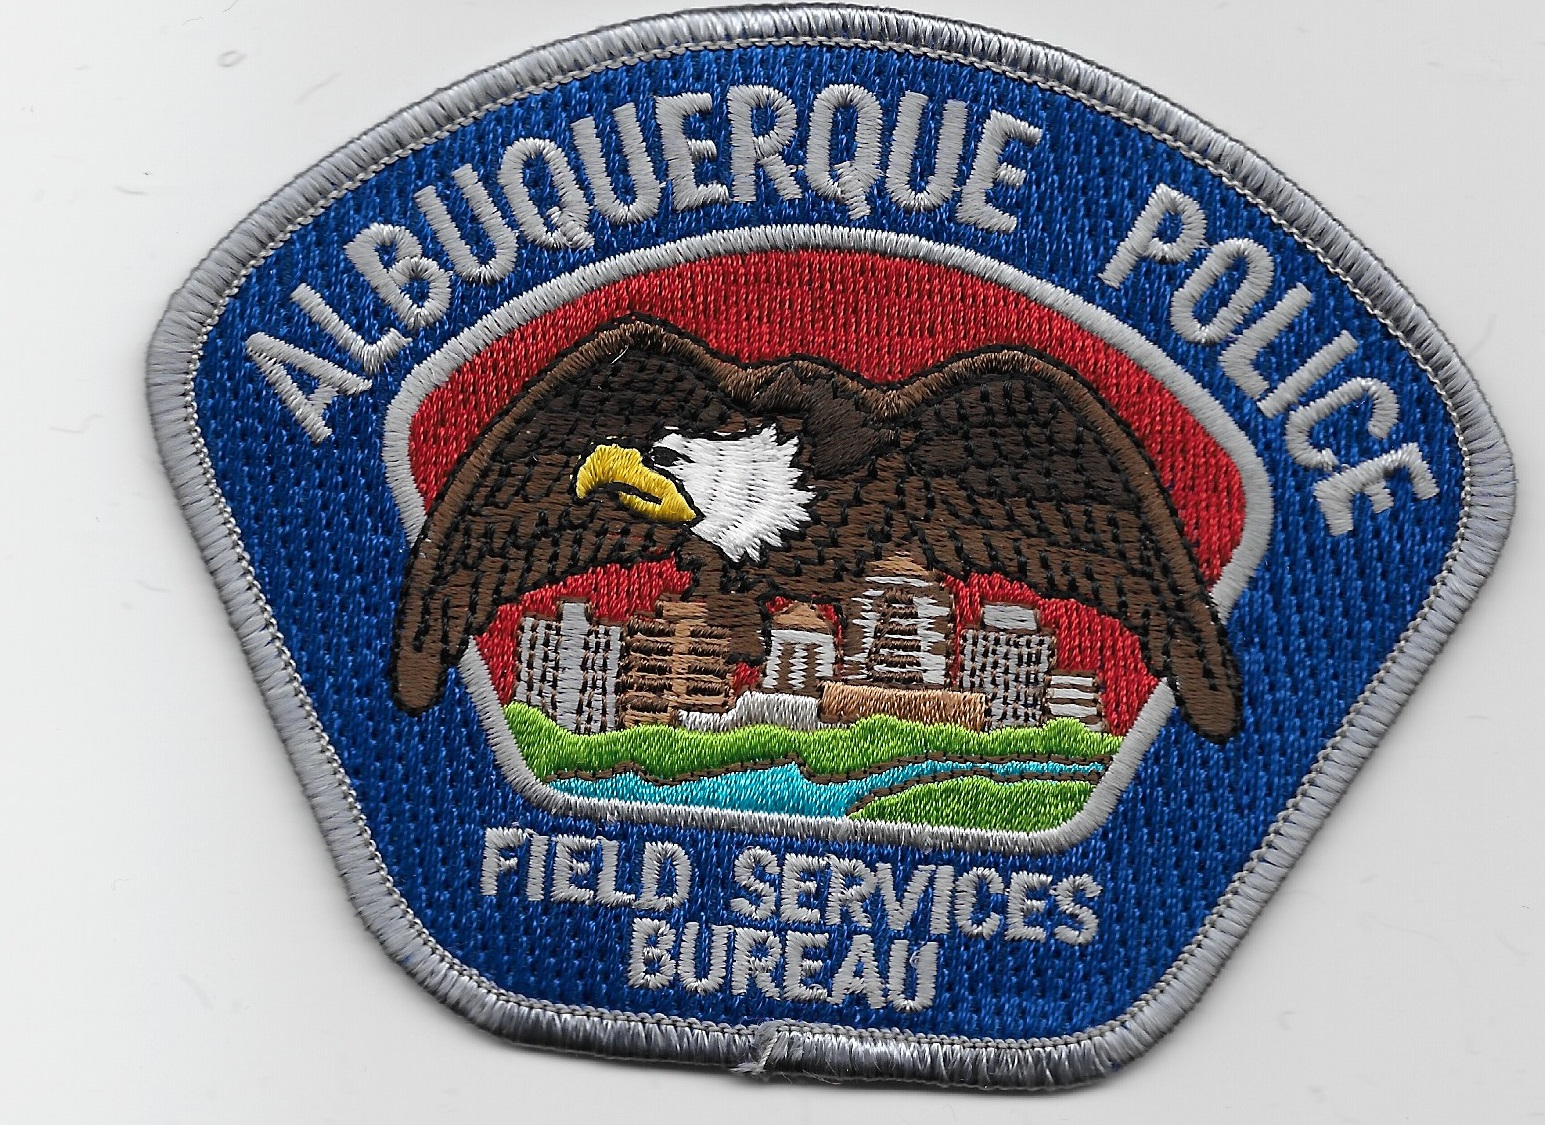 Albuquerque Police Field Serv Gray NM